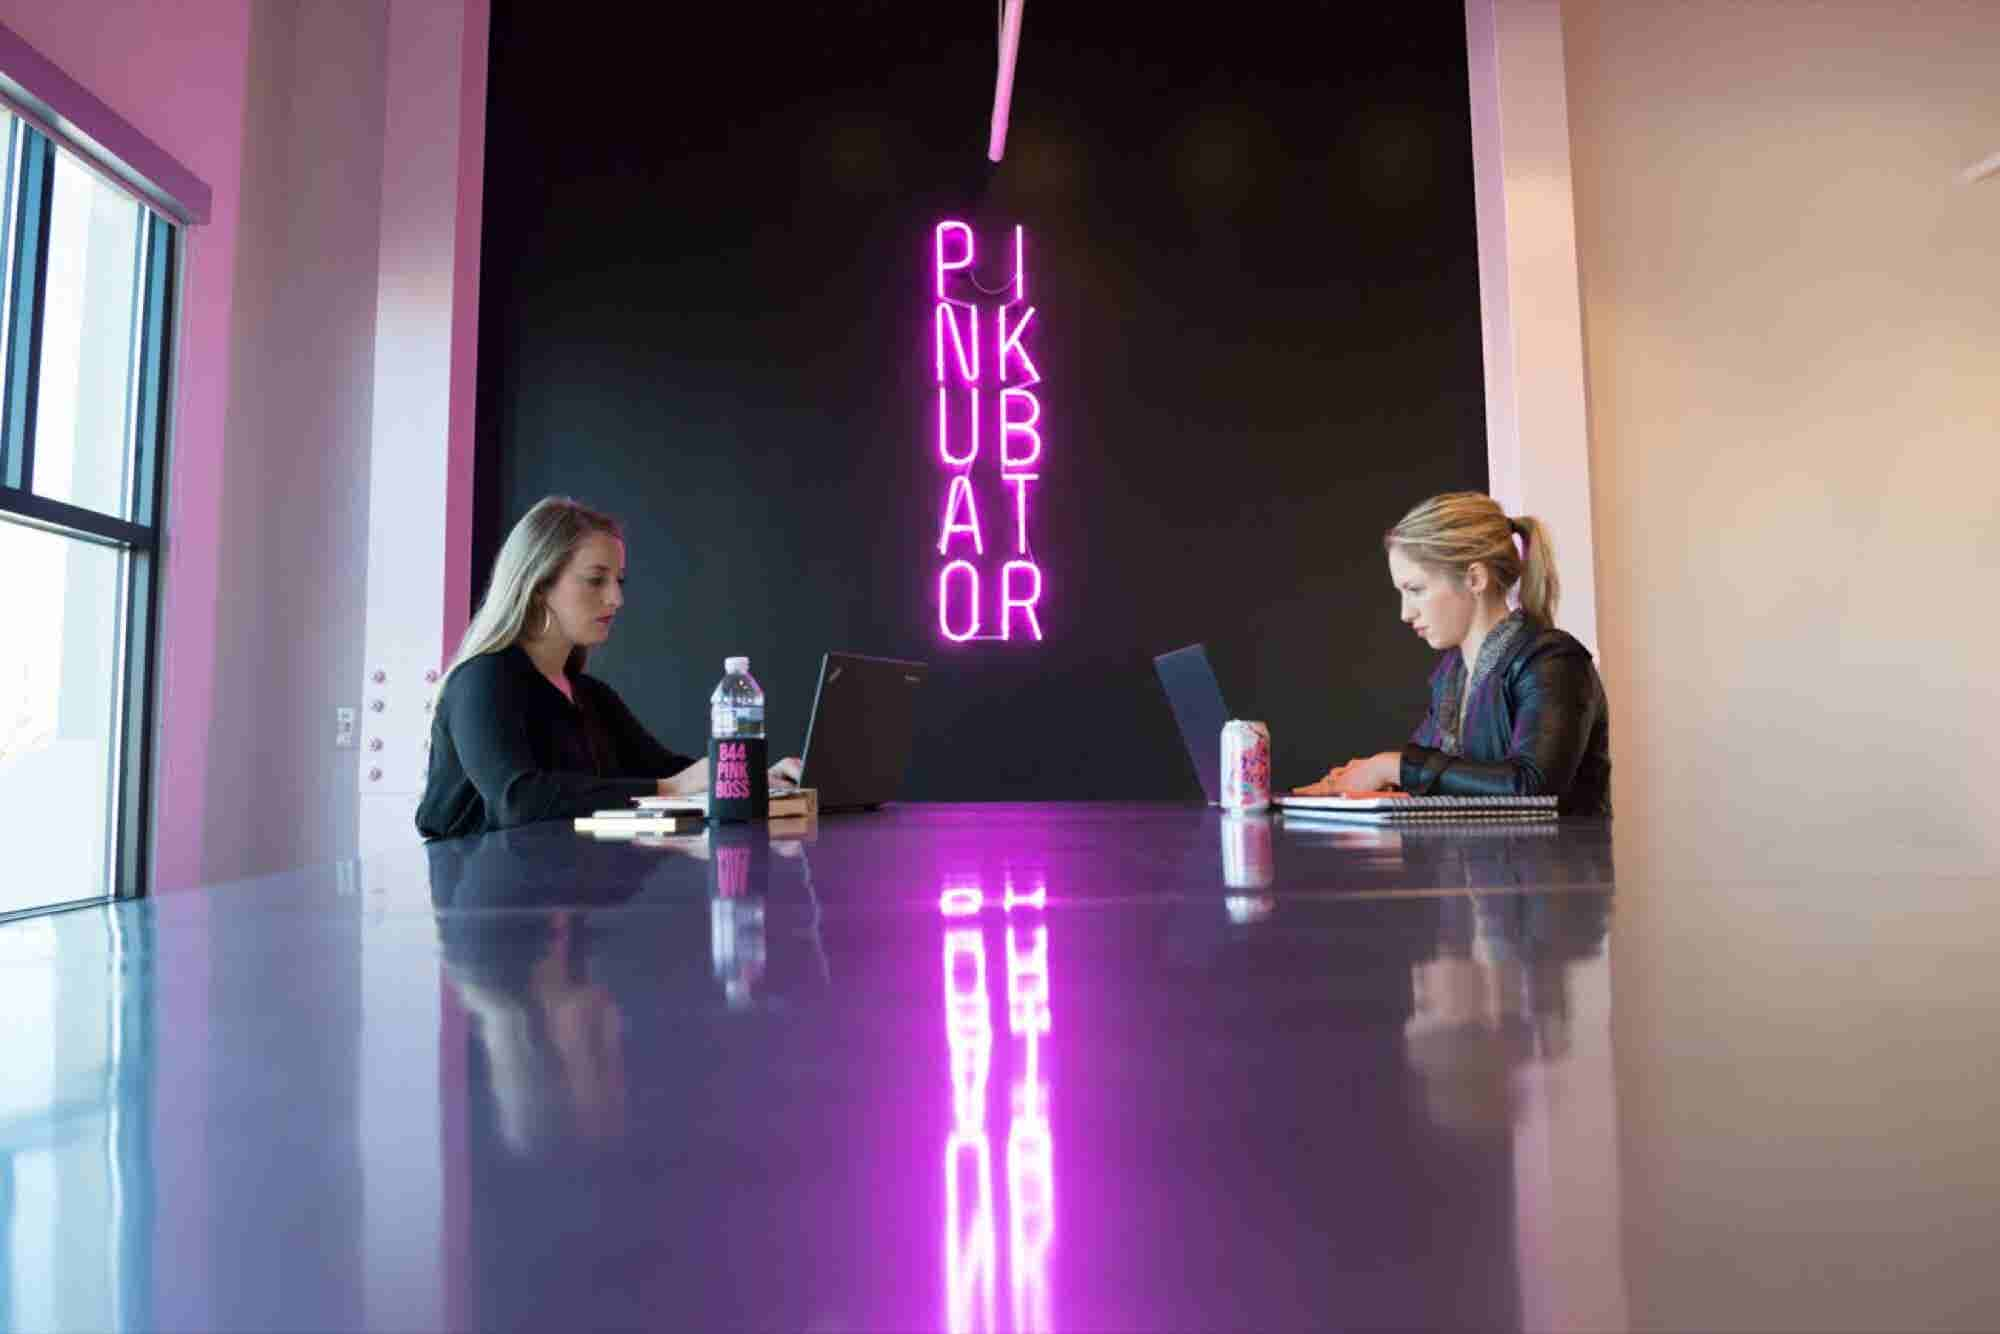 This Incubator for Women-Focused Businesses Finds the Color Pink Empow...